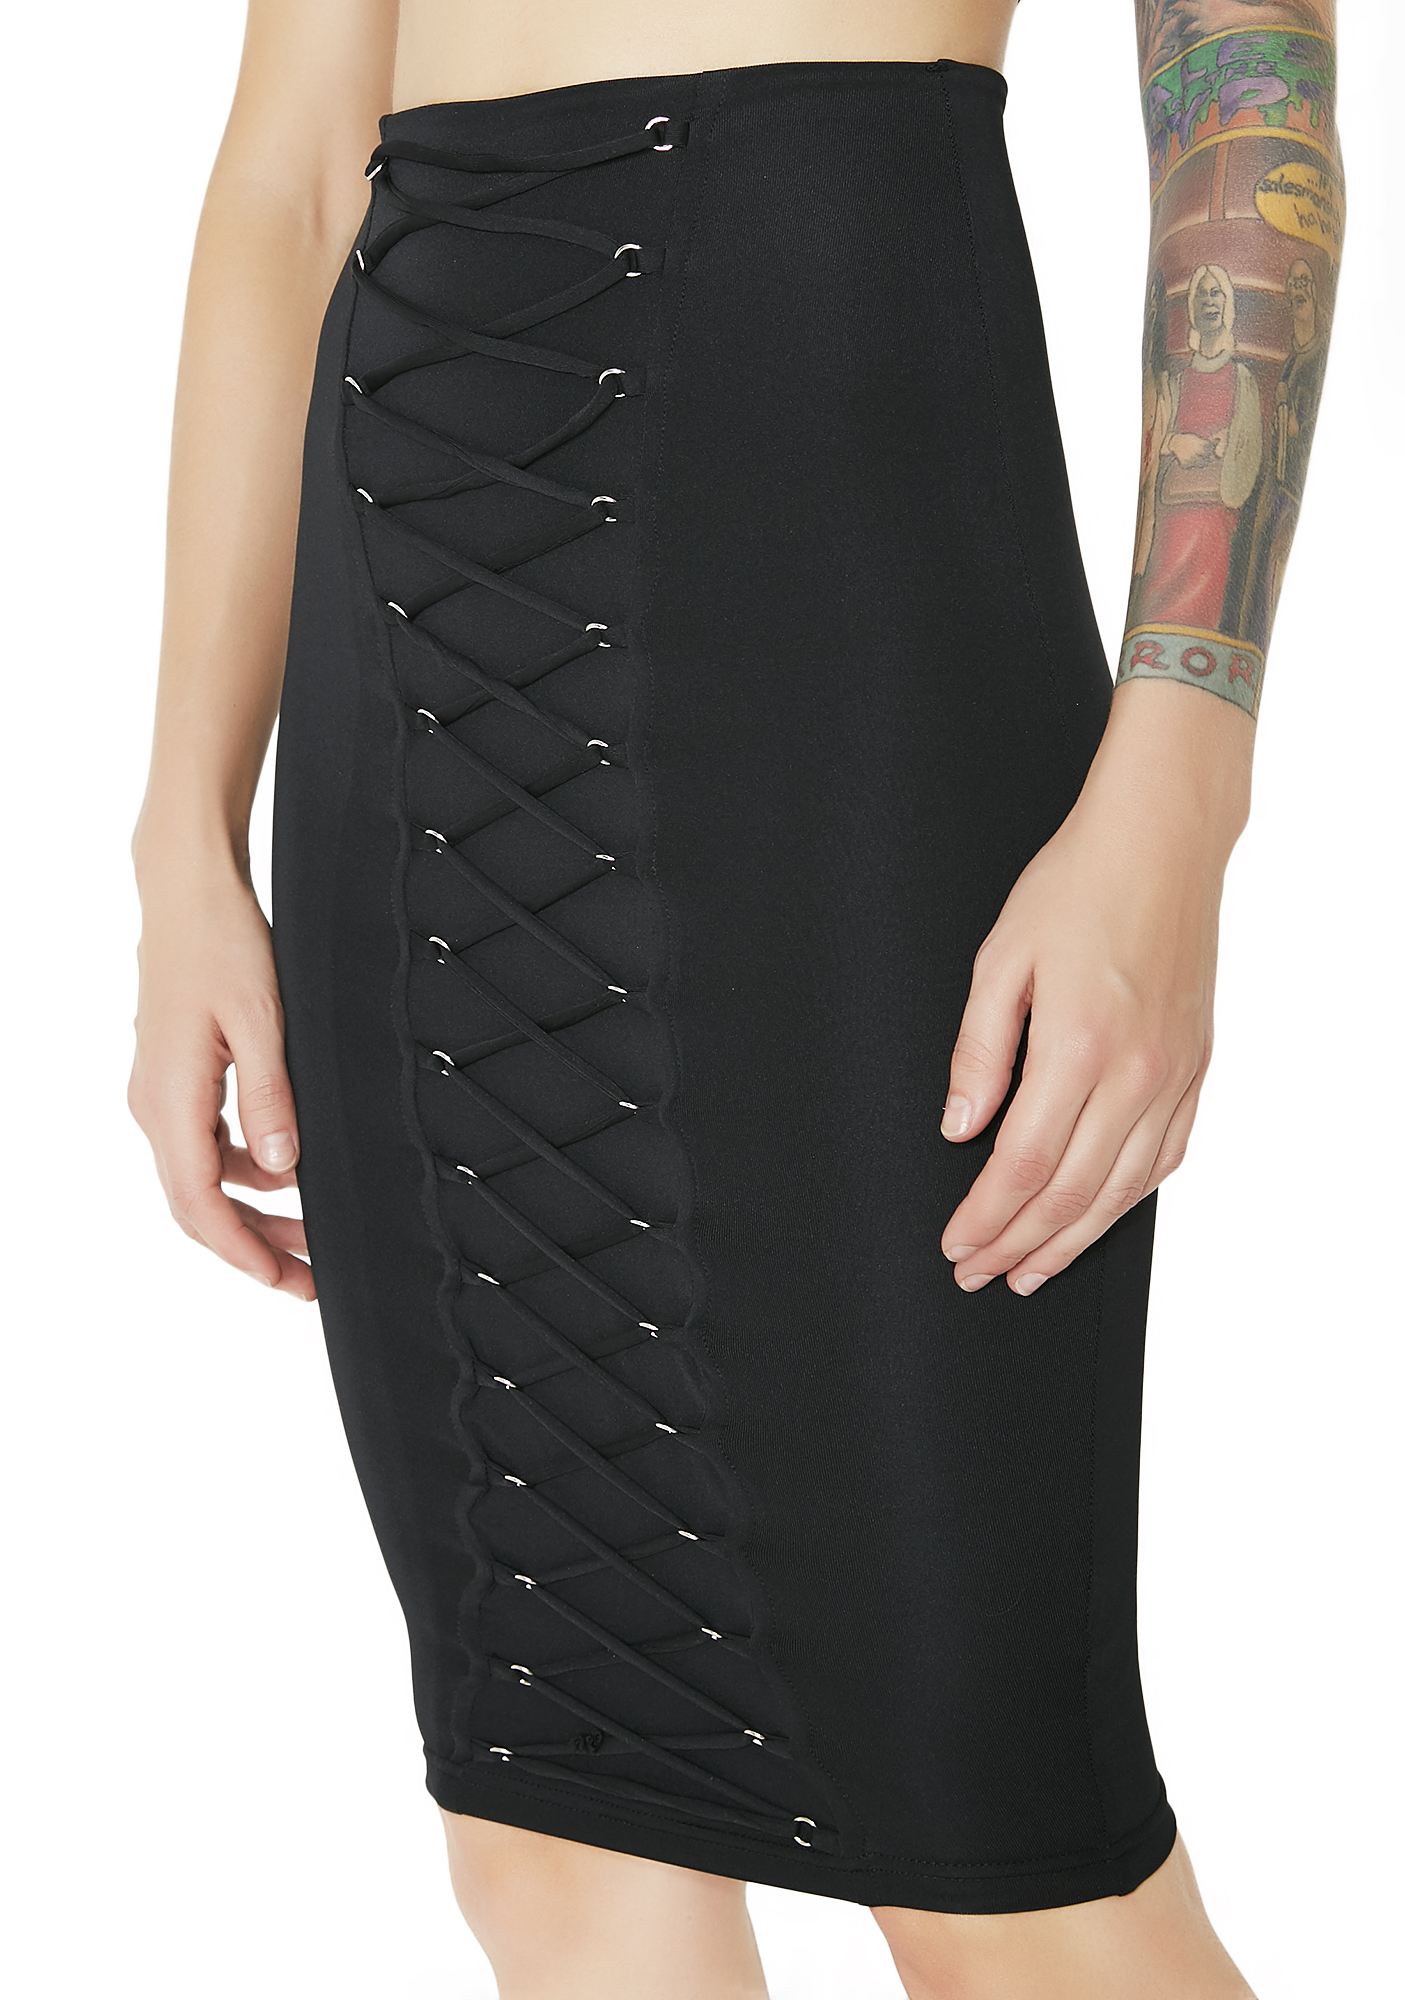 Black Lace-Up Pencil Skirt